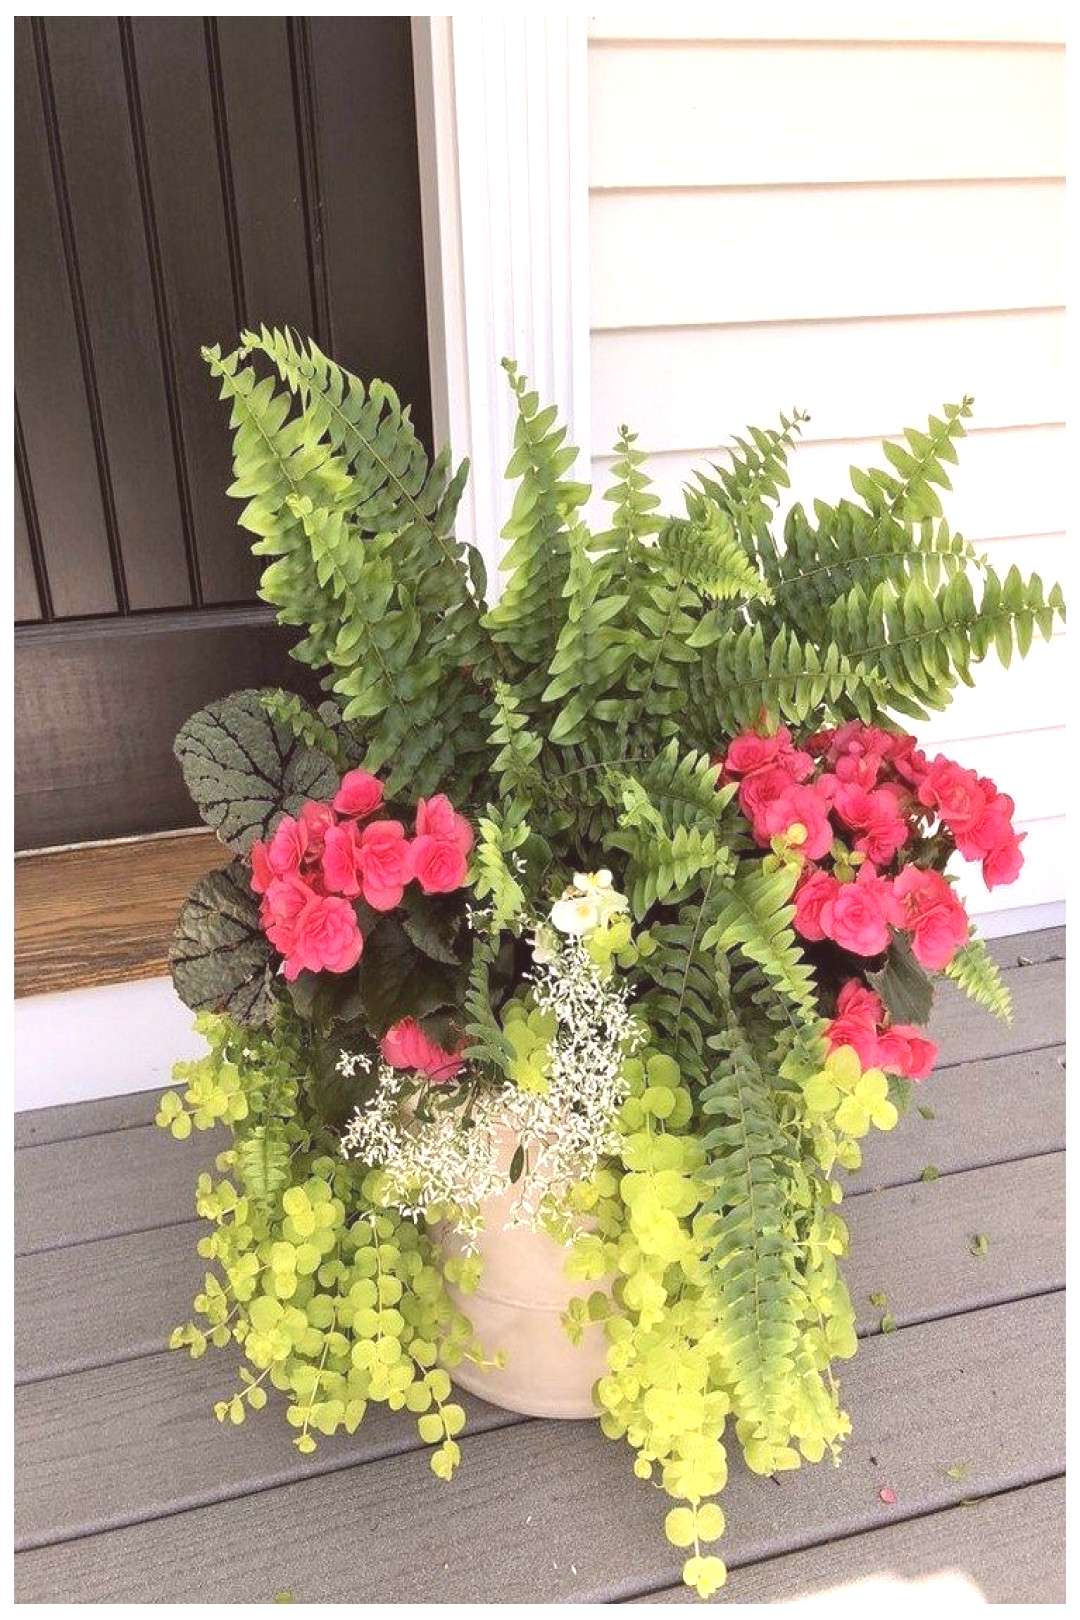 Ideas from 47 planters from my neighborhood 24 -  Container gardening flowers, Container flowers, P